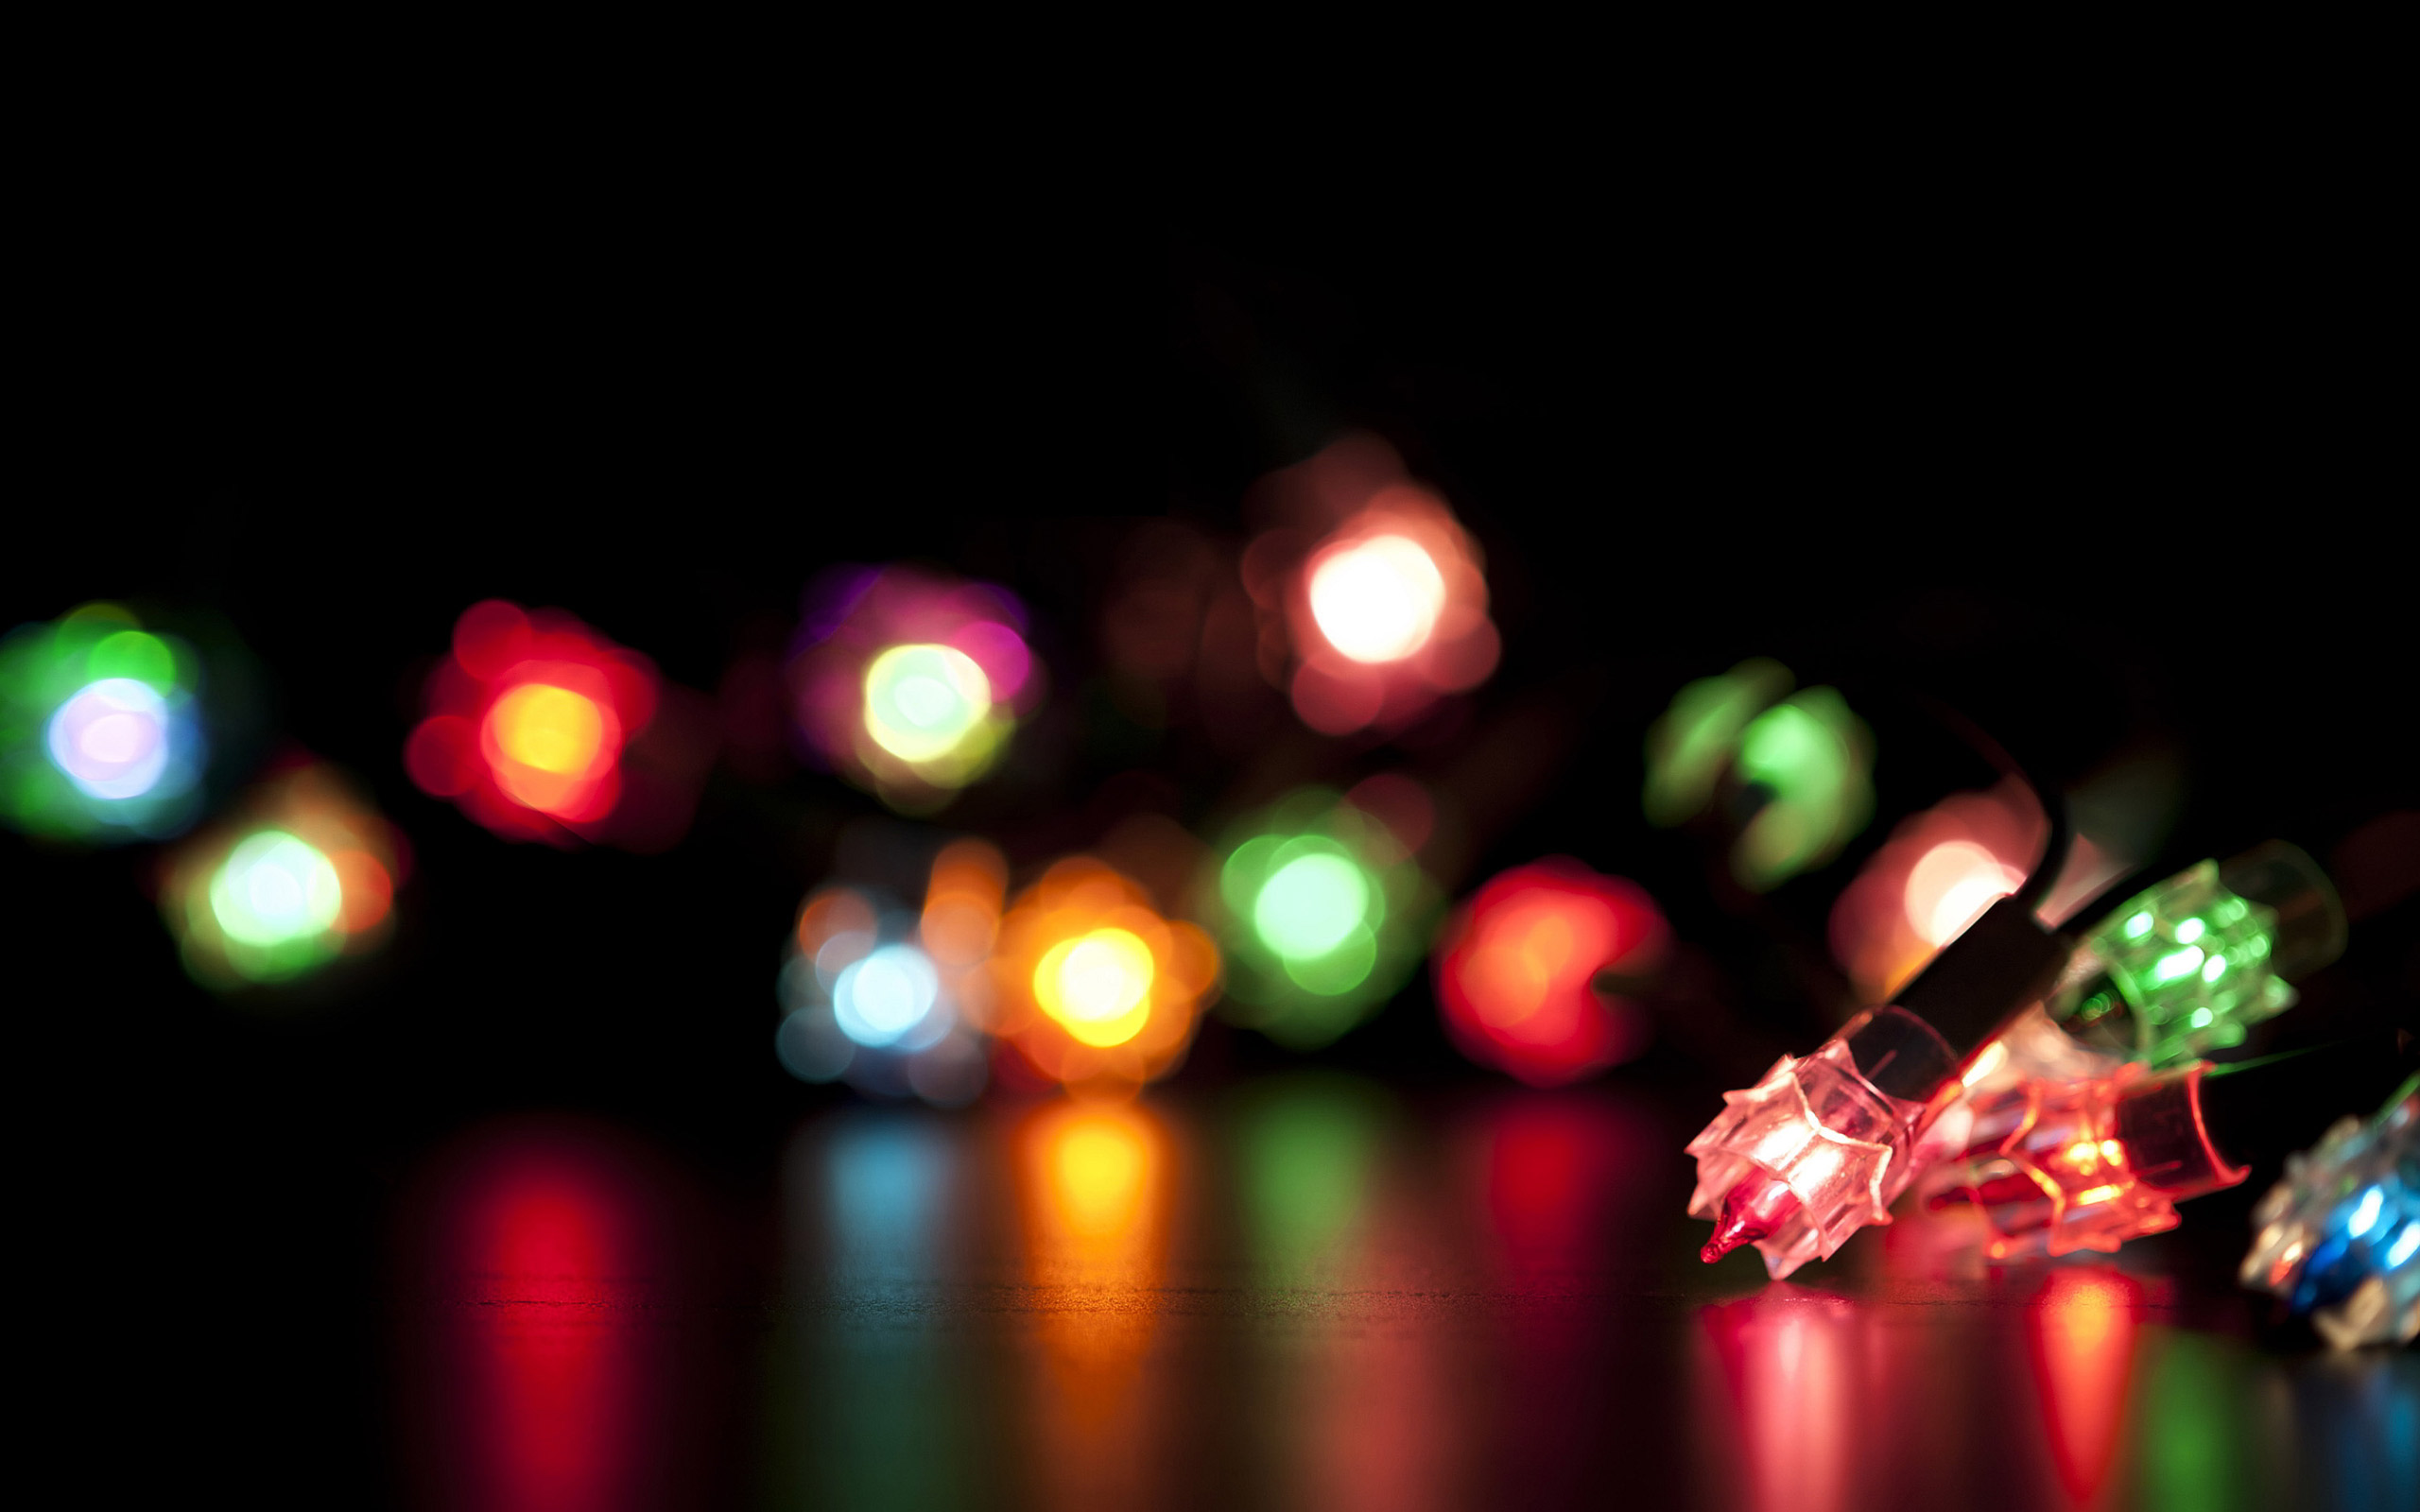 Blurred Christmas Lights Wallpaper 2560x1600